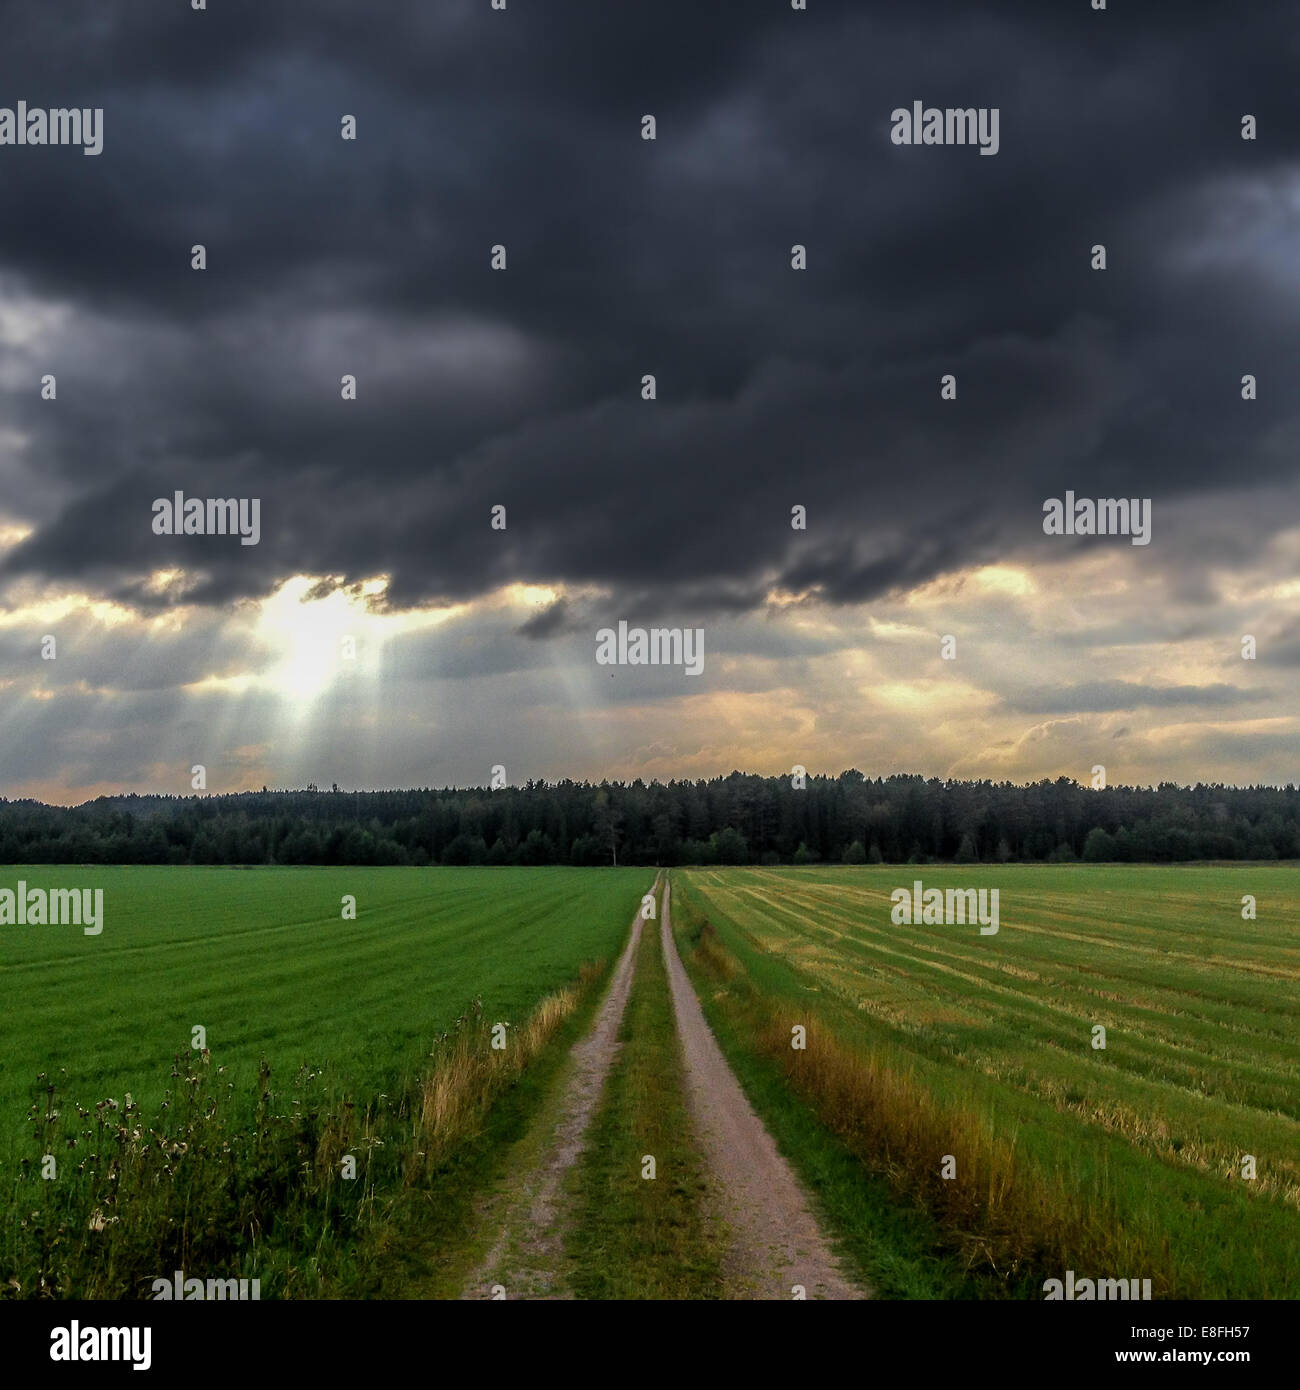 Paysage avec stormy clouds over field Photo Stock